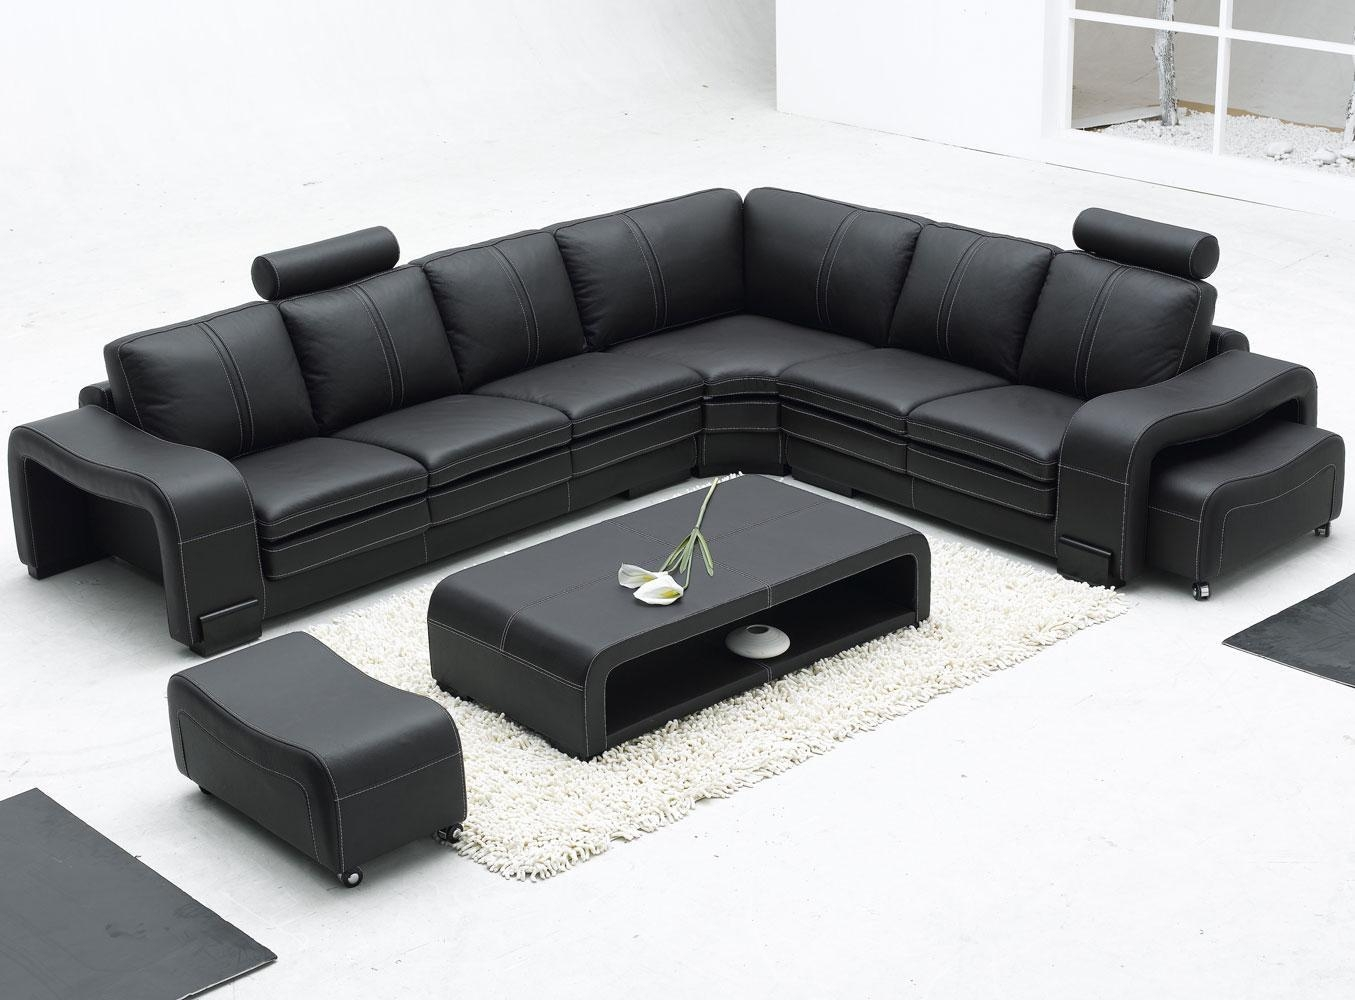 Furniture: Modern Bonded Leather Sectional Sofa In Black And Inside Black Modern Sectional Sofas (View 2 of 20)